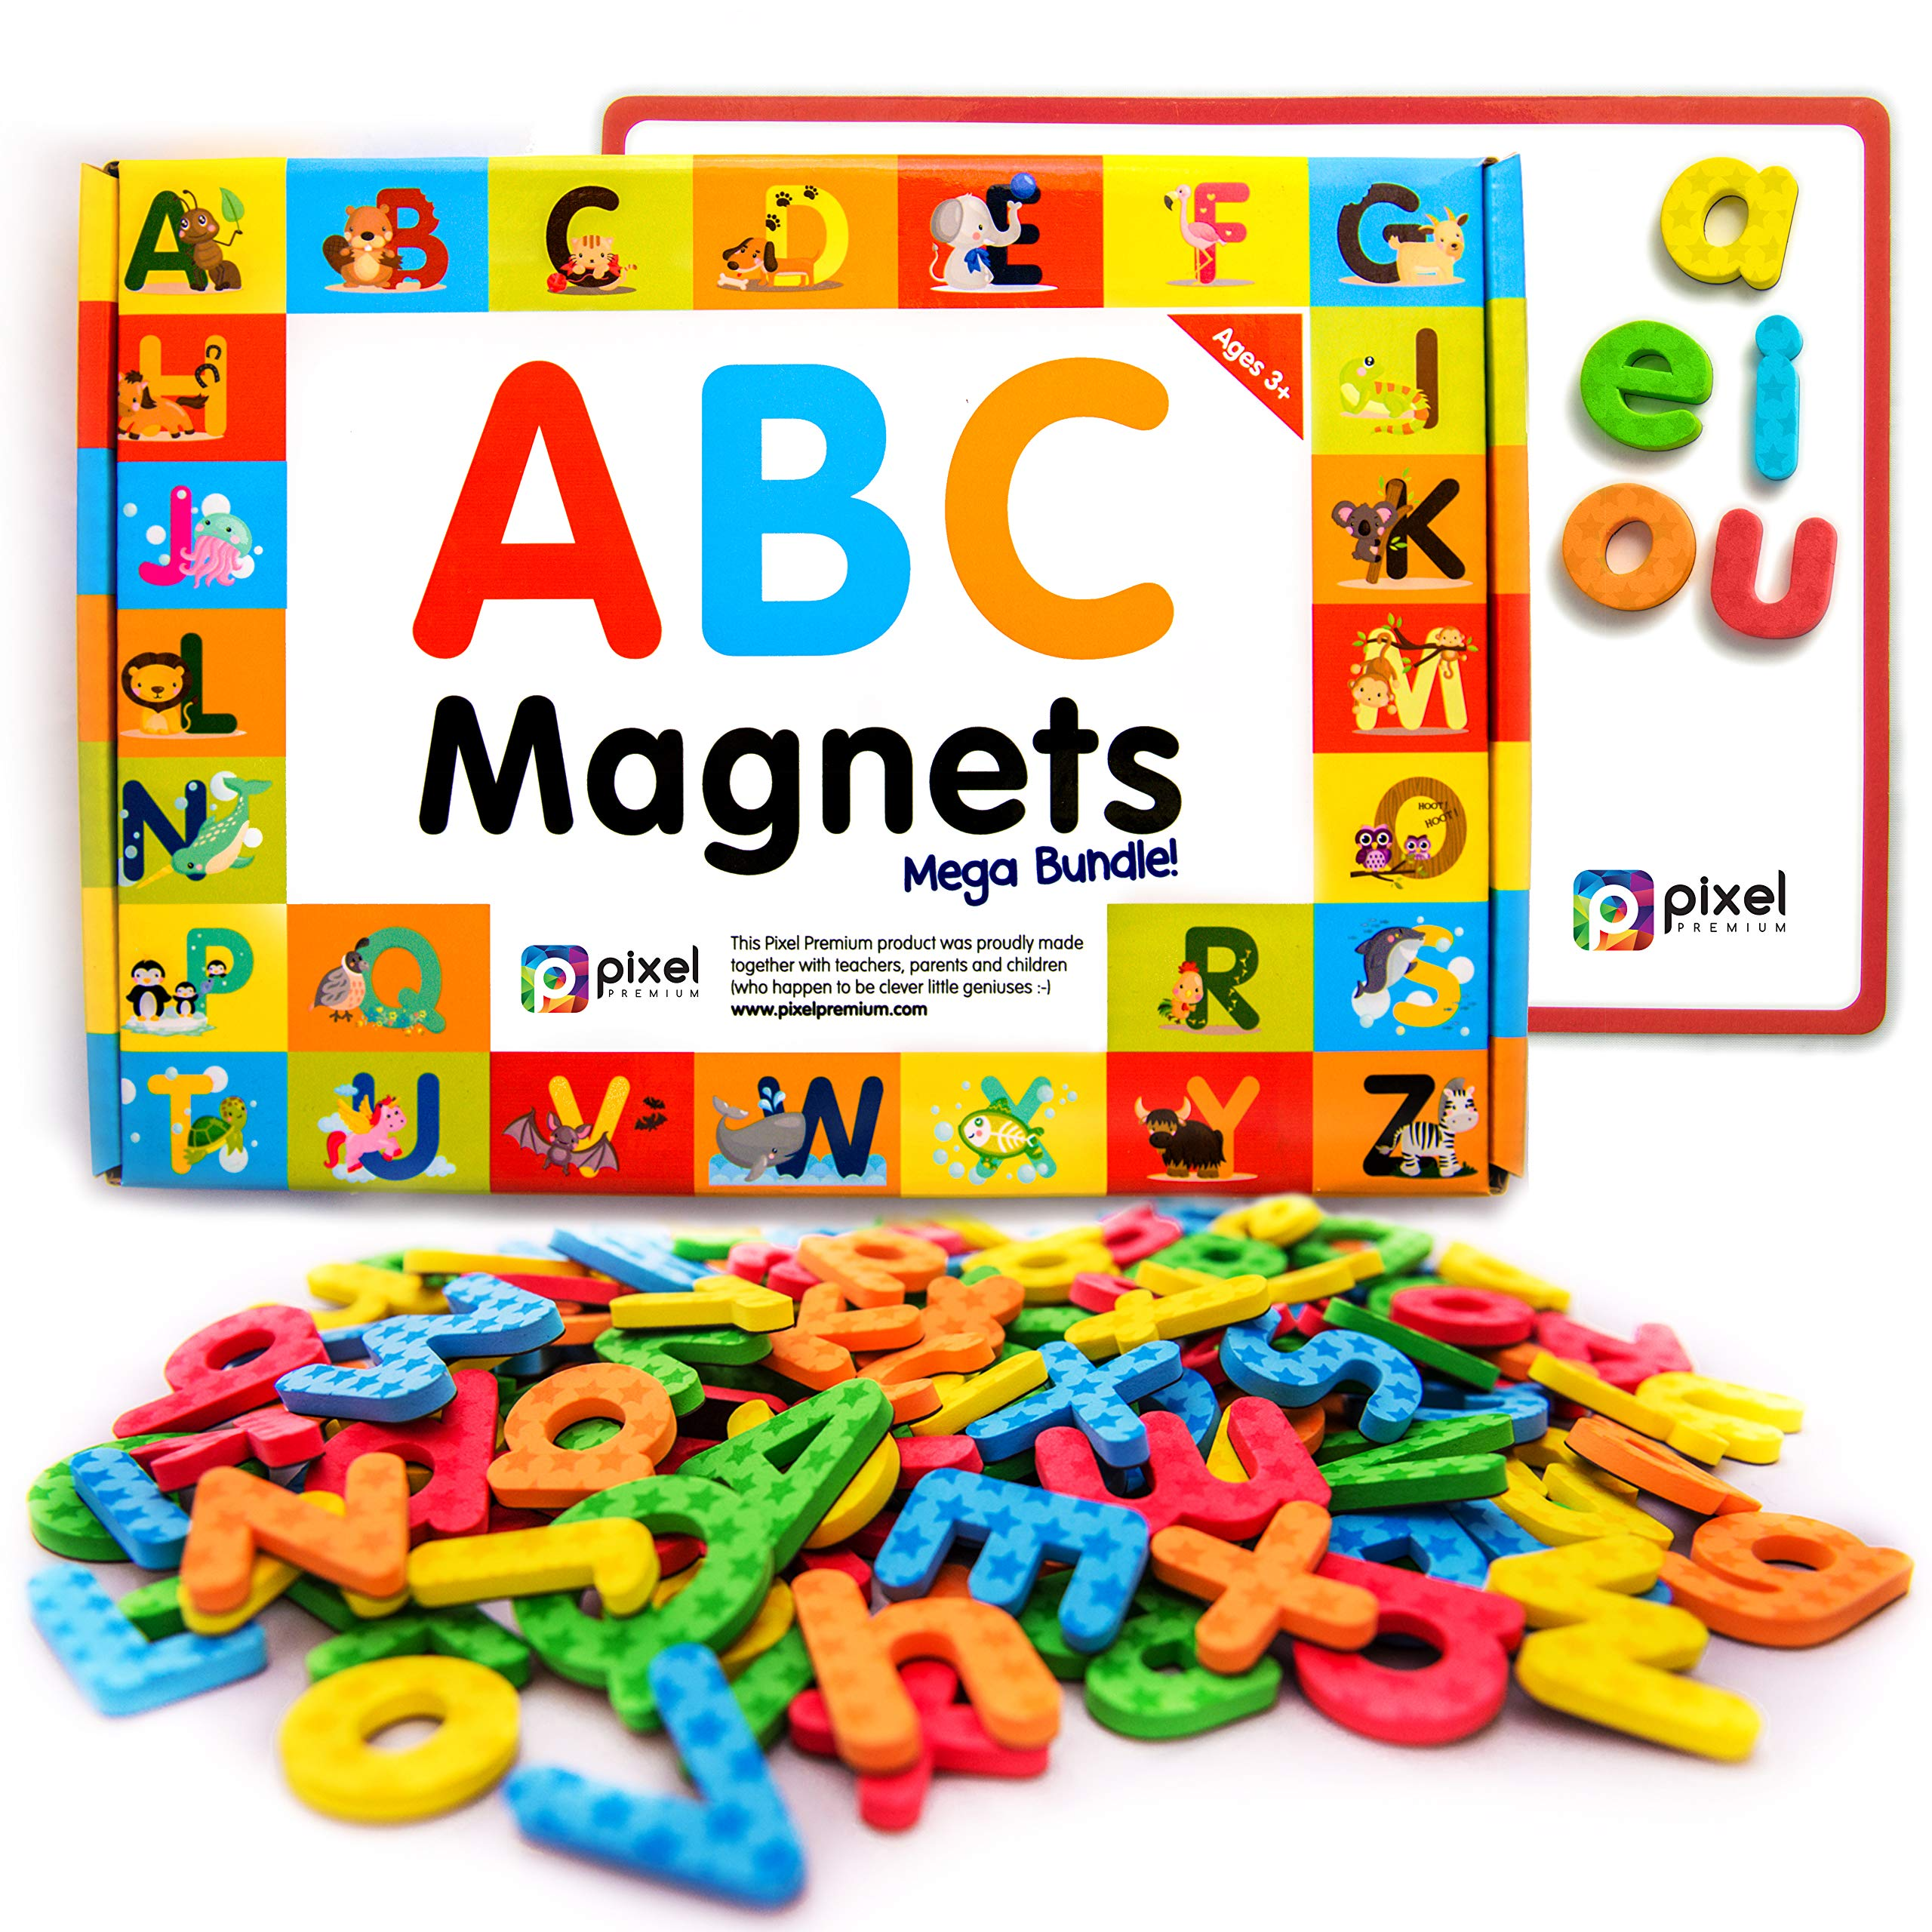 Pixel Premium ABC Magnets for Kids Gift Set - 142 Magnetic Letters for Fridge, Dry Erase Magnetic Board and FREE e-Book with 40+ Learning & Spelling Games - Best Alphabet Magnets for Refrigerator Fun! by Pixel Premium